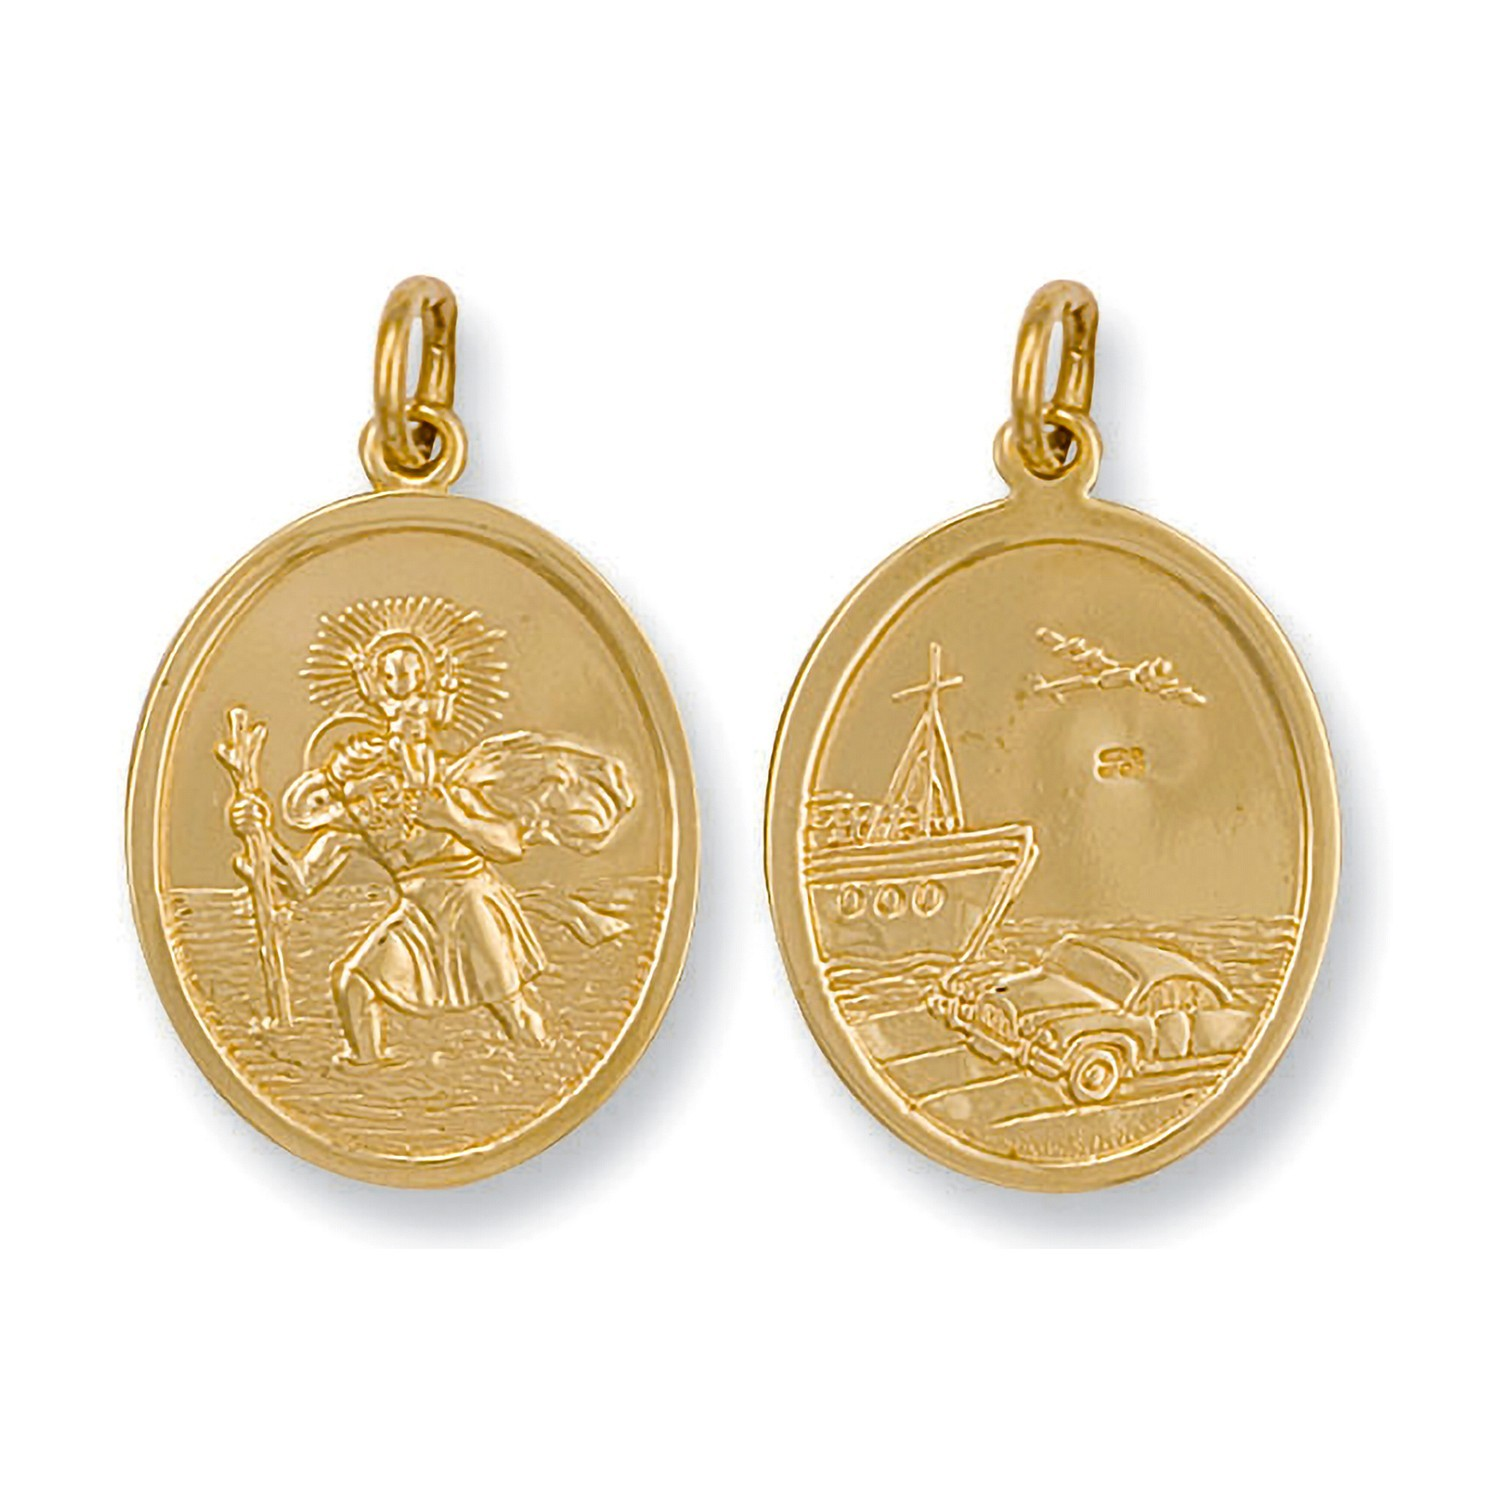 Y/G Double Sided Oval Shaped St Christopher Pendant